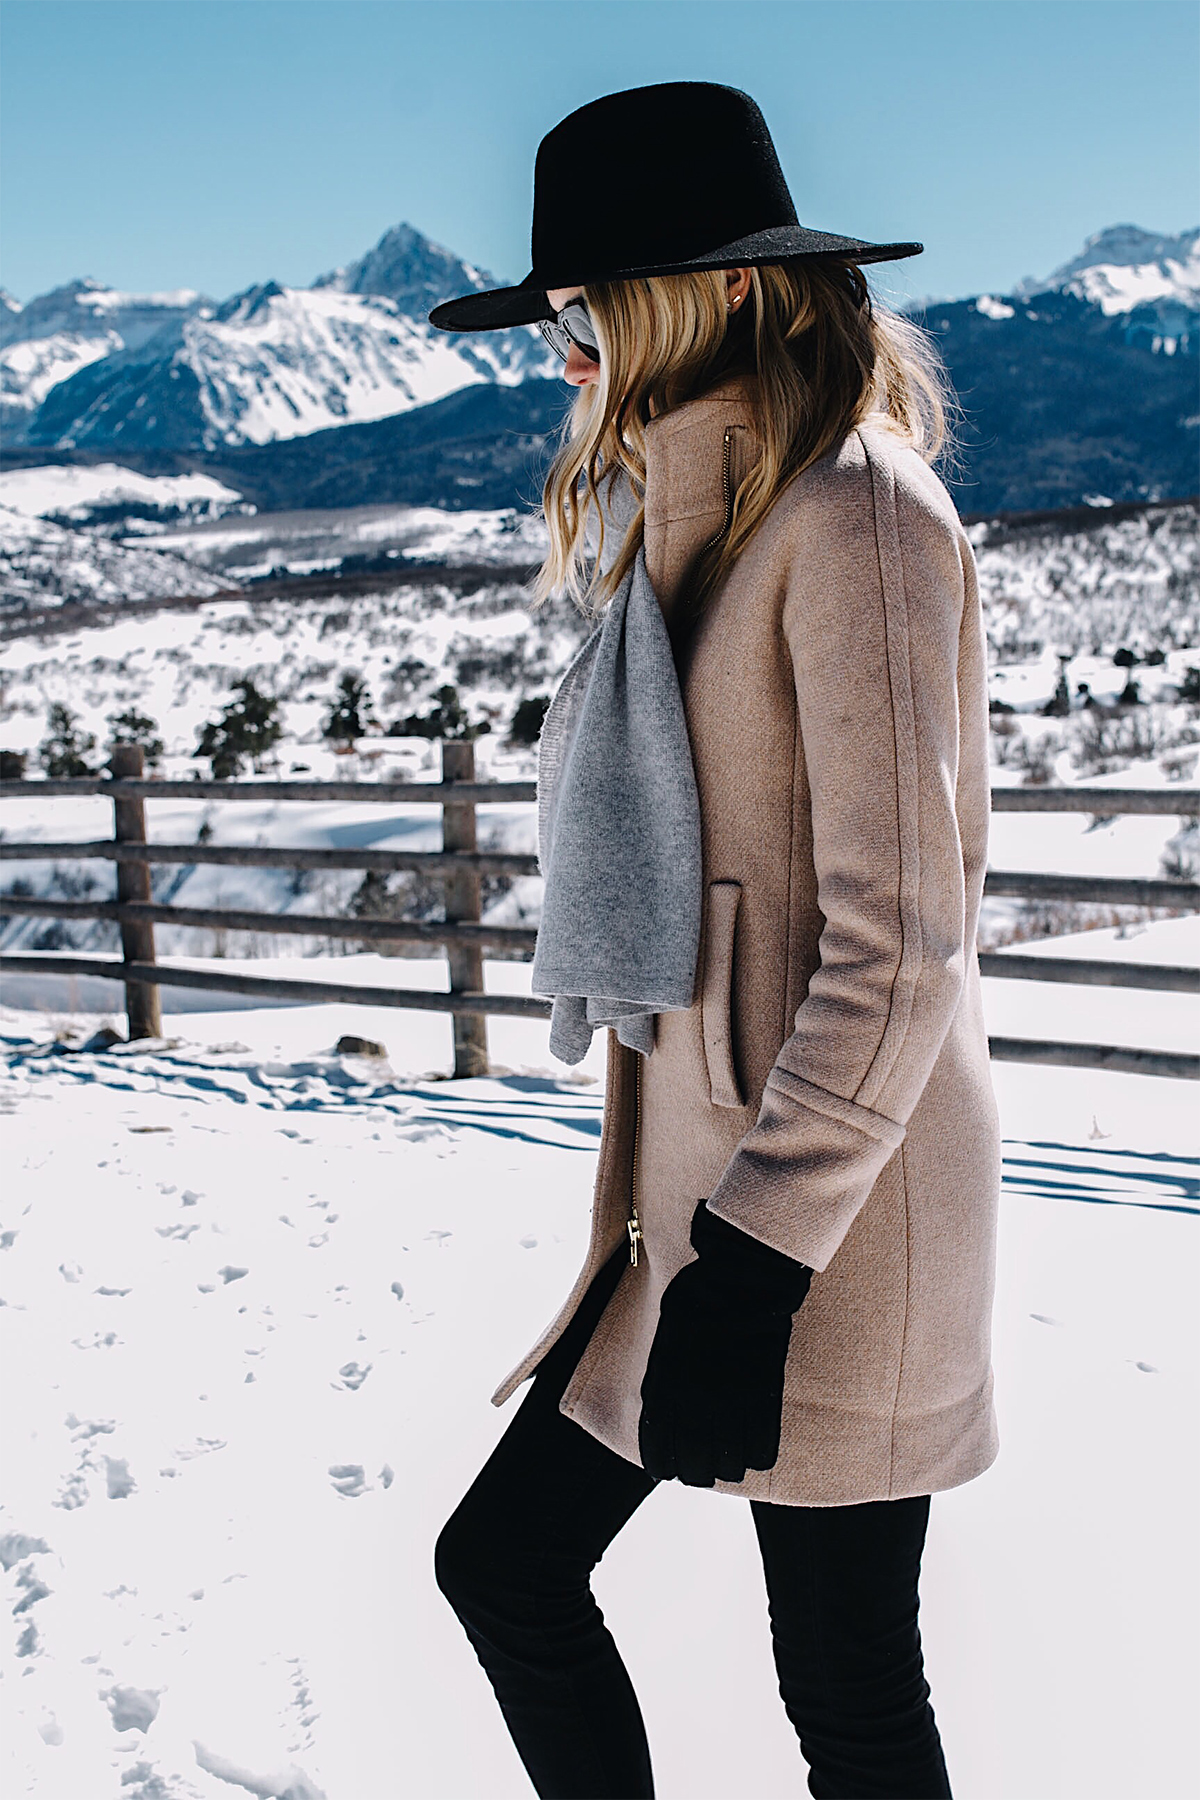 Telluride CO Snow Mountains Blonde Woman Wearing Grey Scarf Camel Coat Black Wool Hat Black Gloves Fashion Jackson Dallas Blogger Fashion Blogger